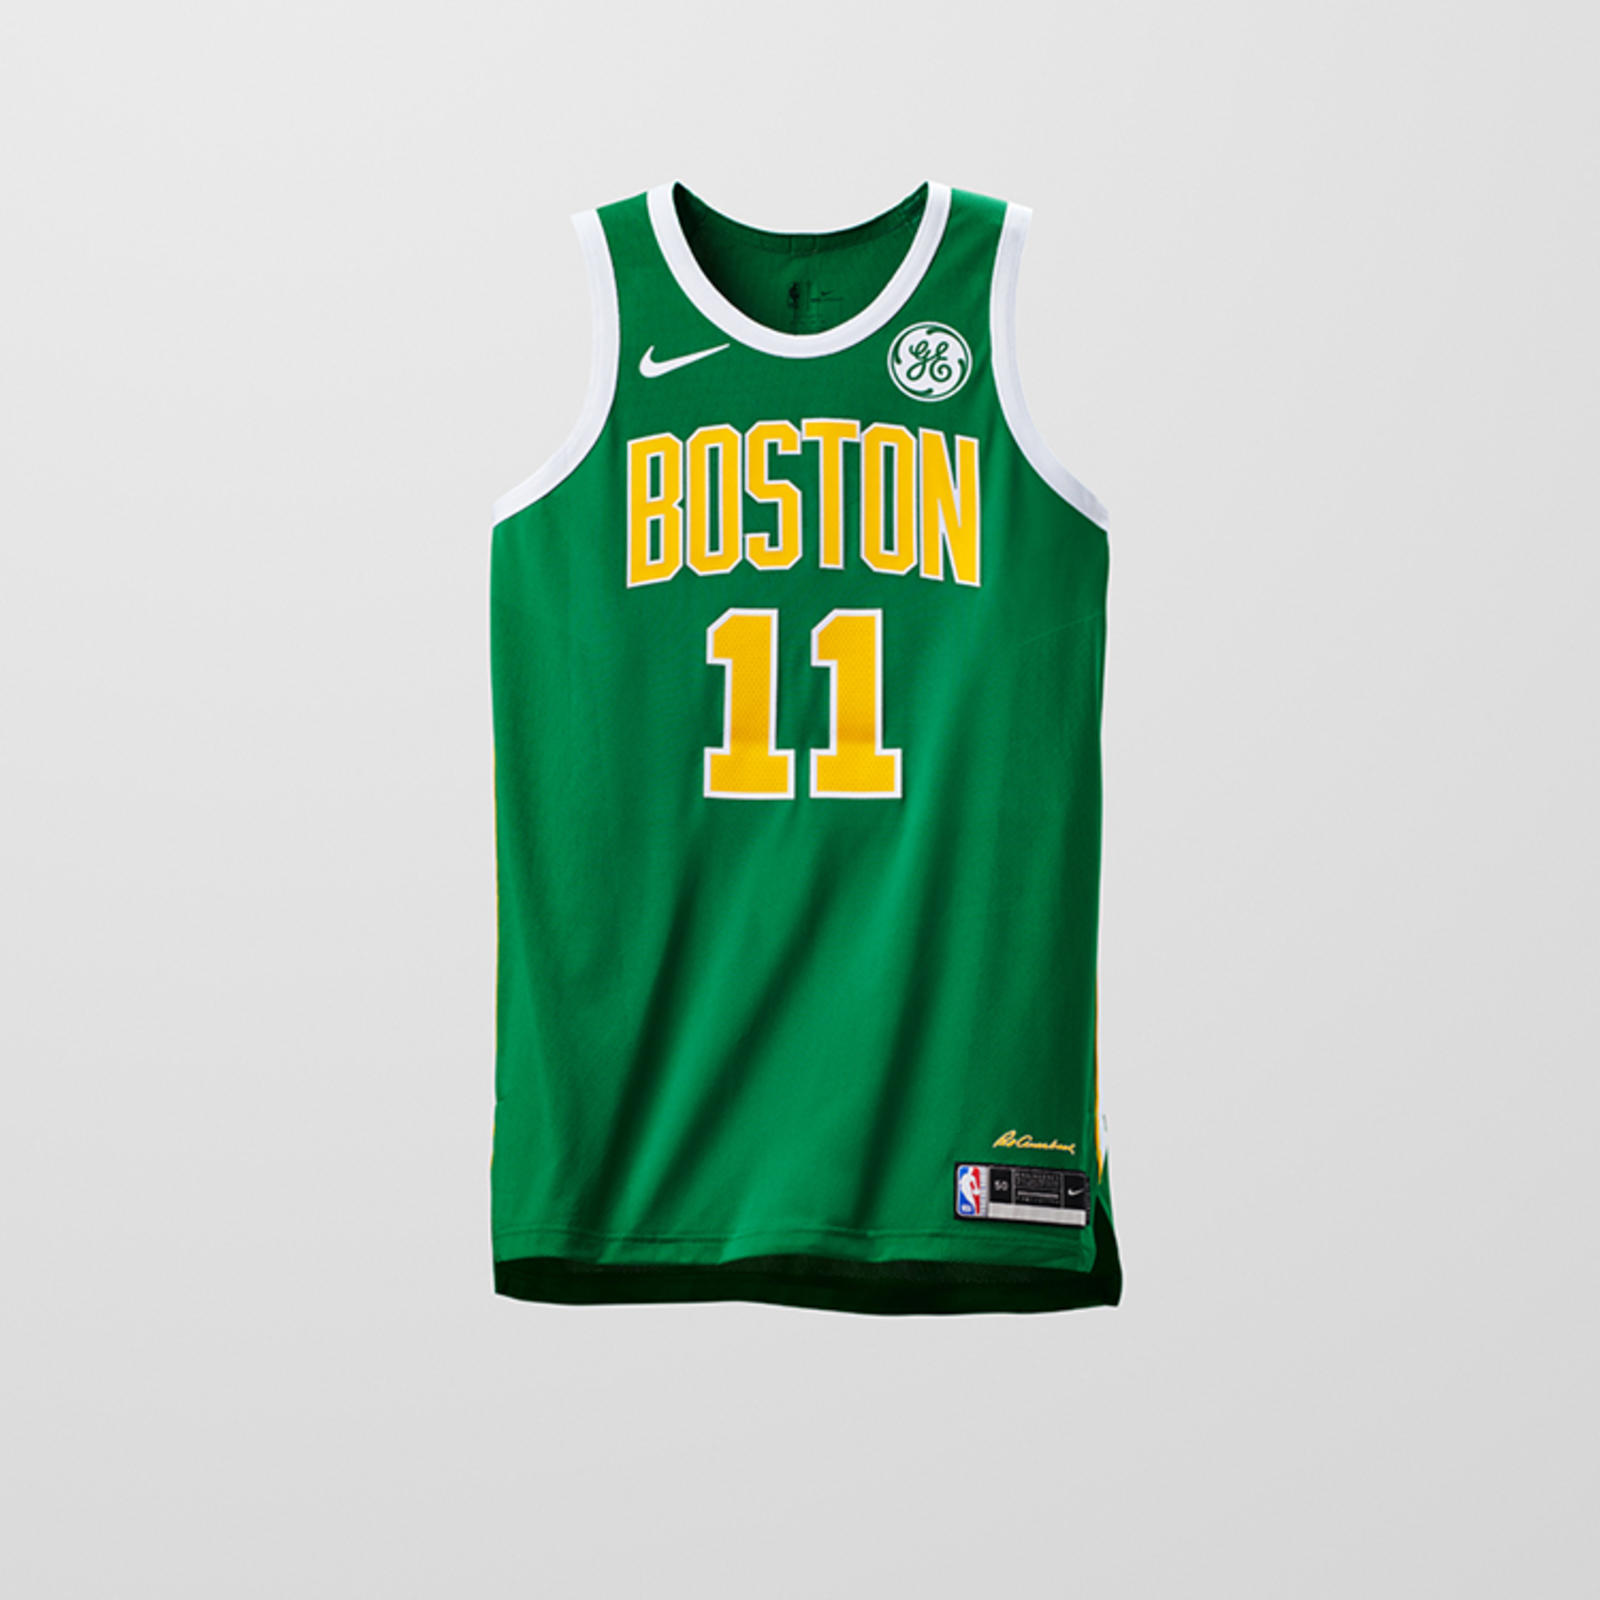 831e877d5 Introducing the Nike x NBA EARNED Edition Uniforms 1. BOSTON CELTICS